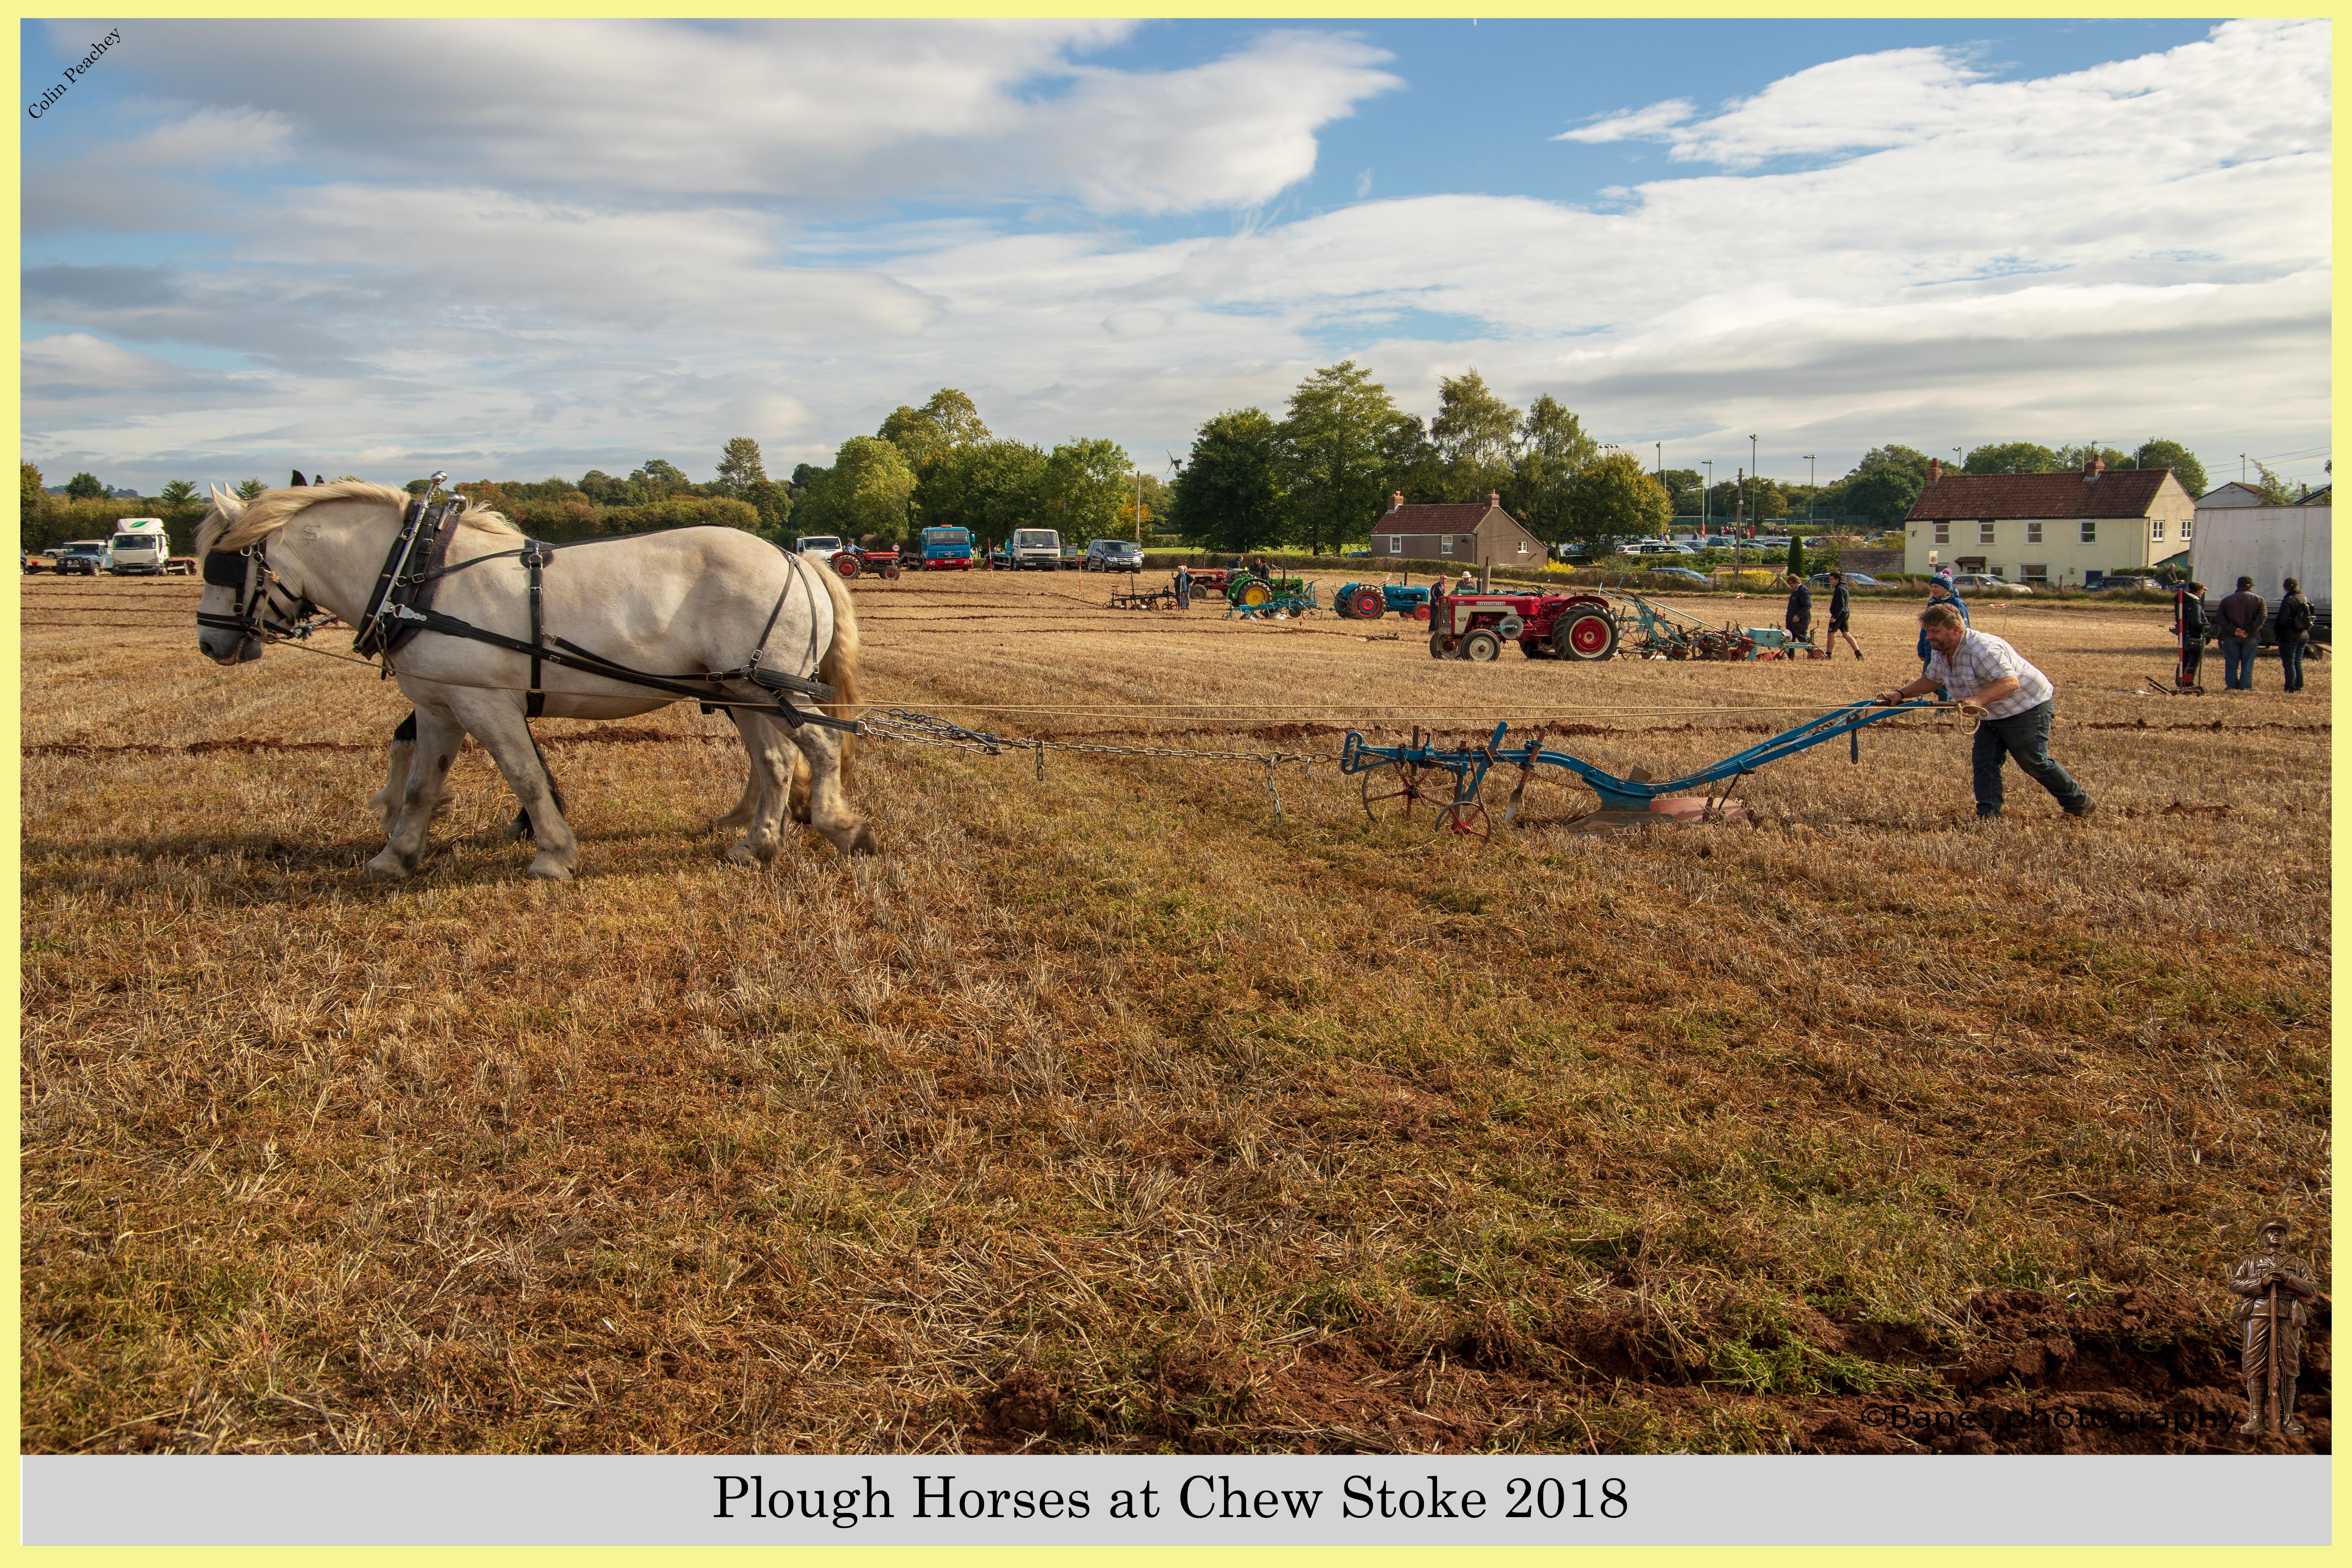 Plough Horses at Chew Stoke 2018